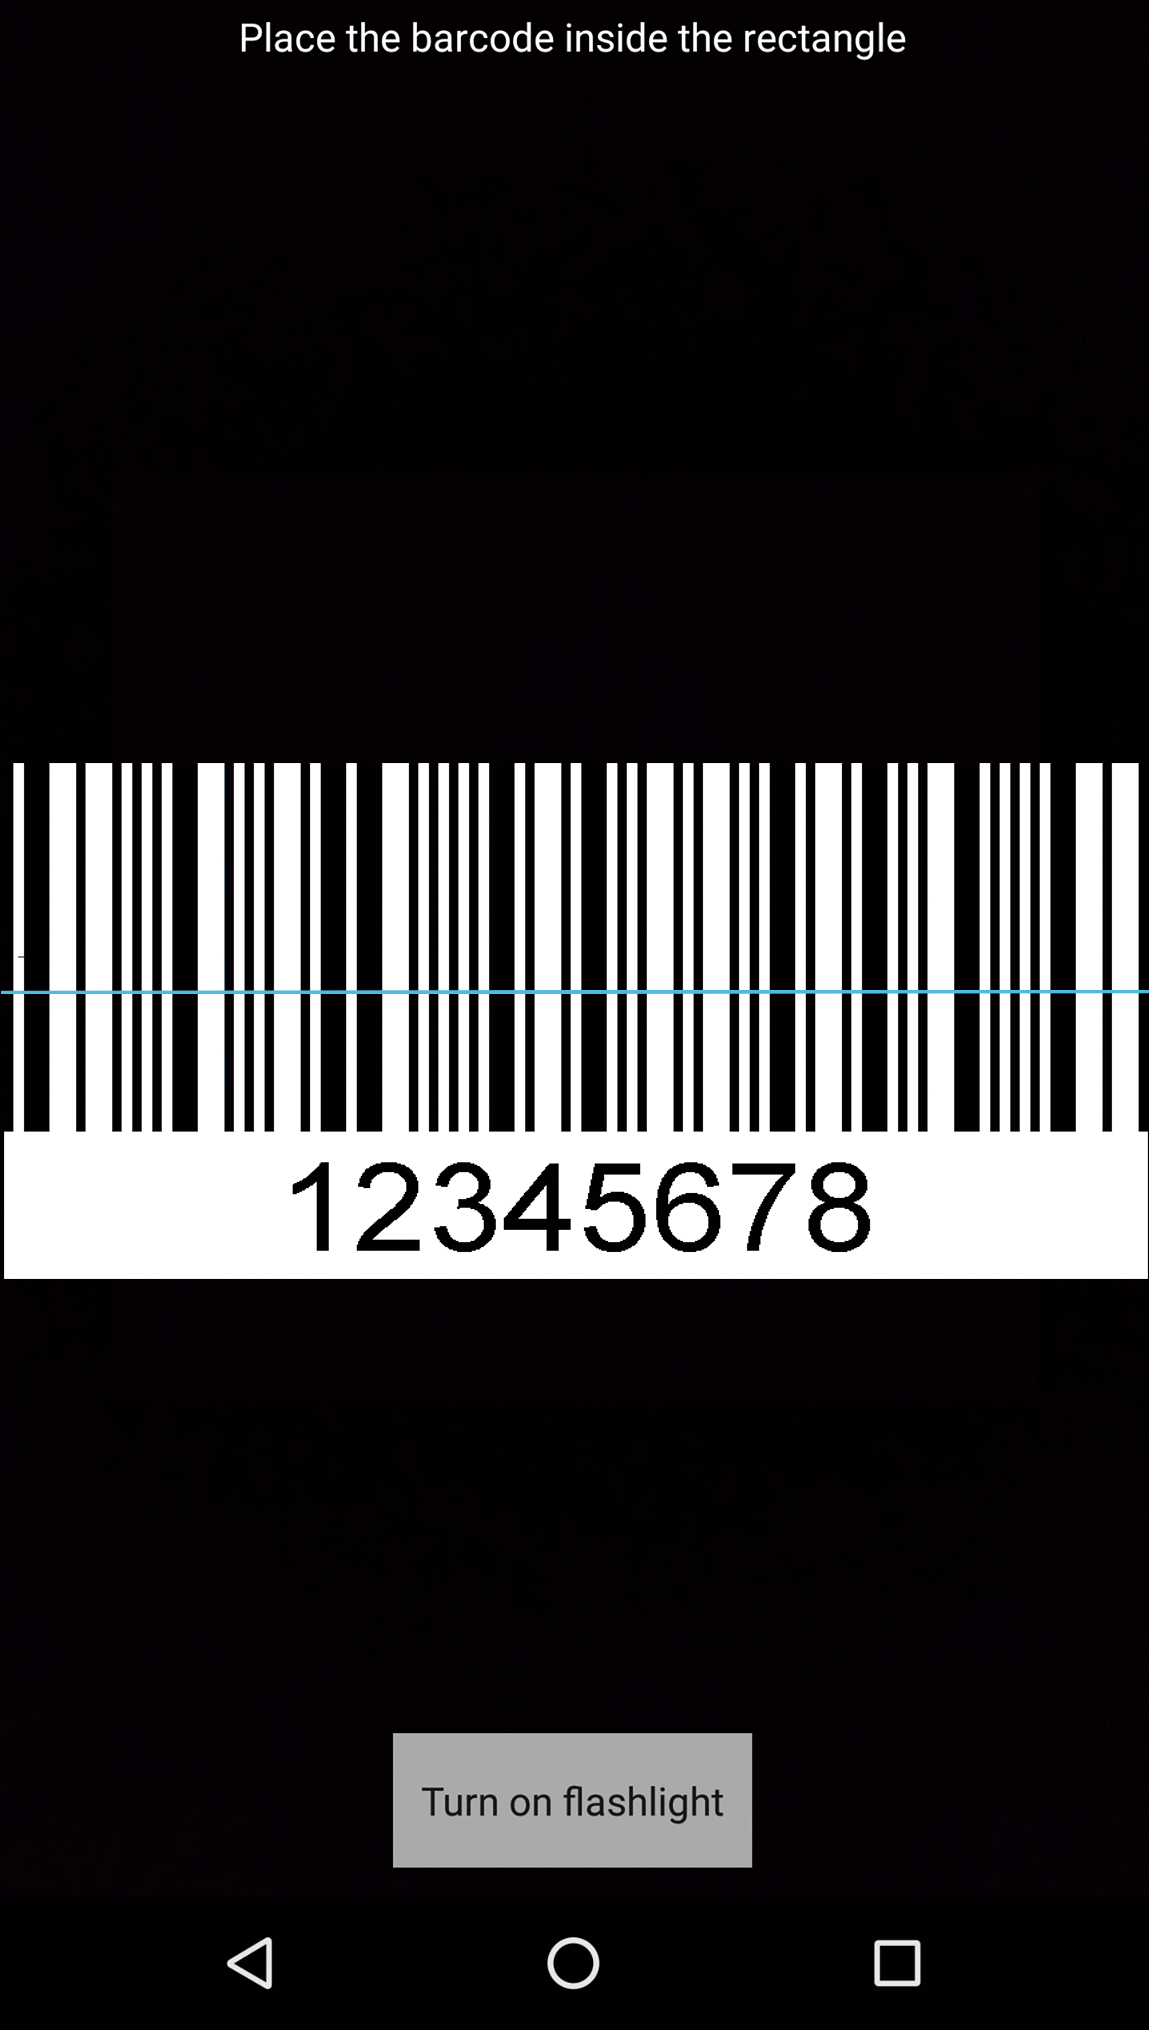 A barcode scanner on an Android device. A barcode is in the viewfinder, with a thin blue line across the barcode.